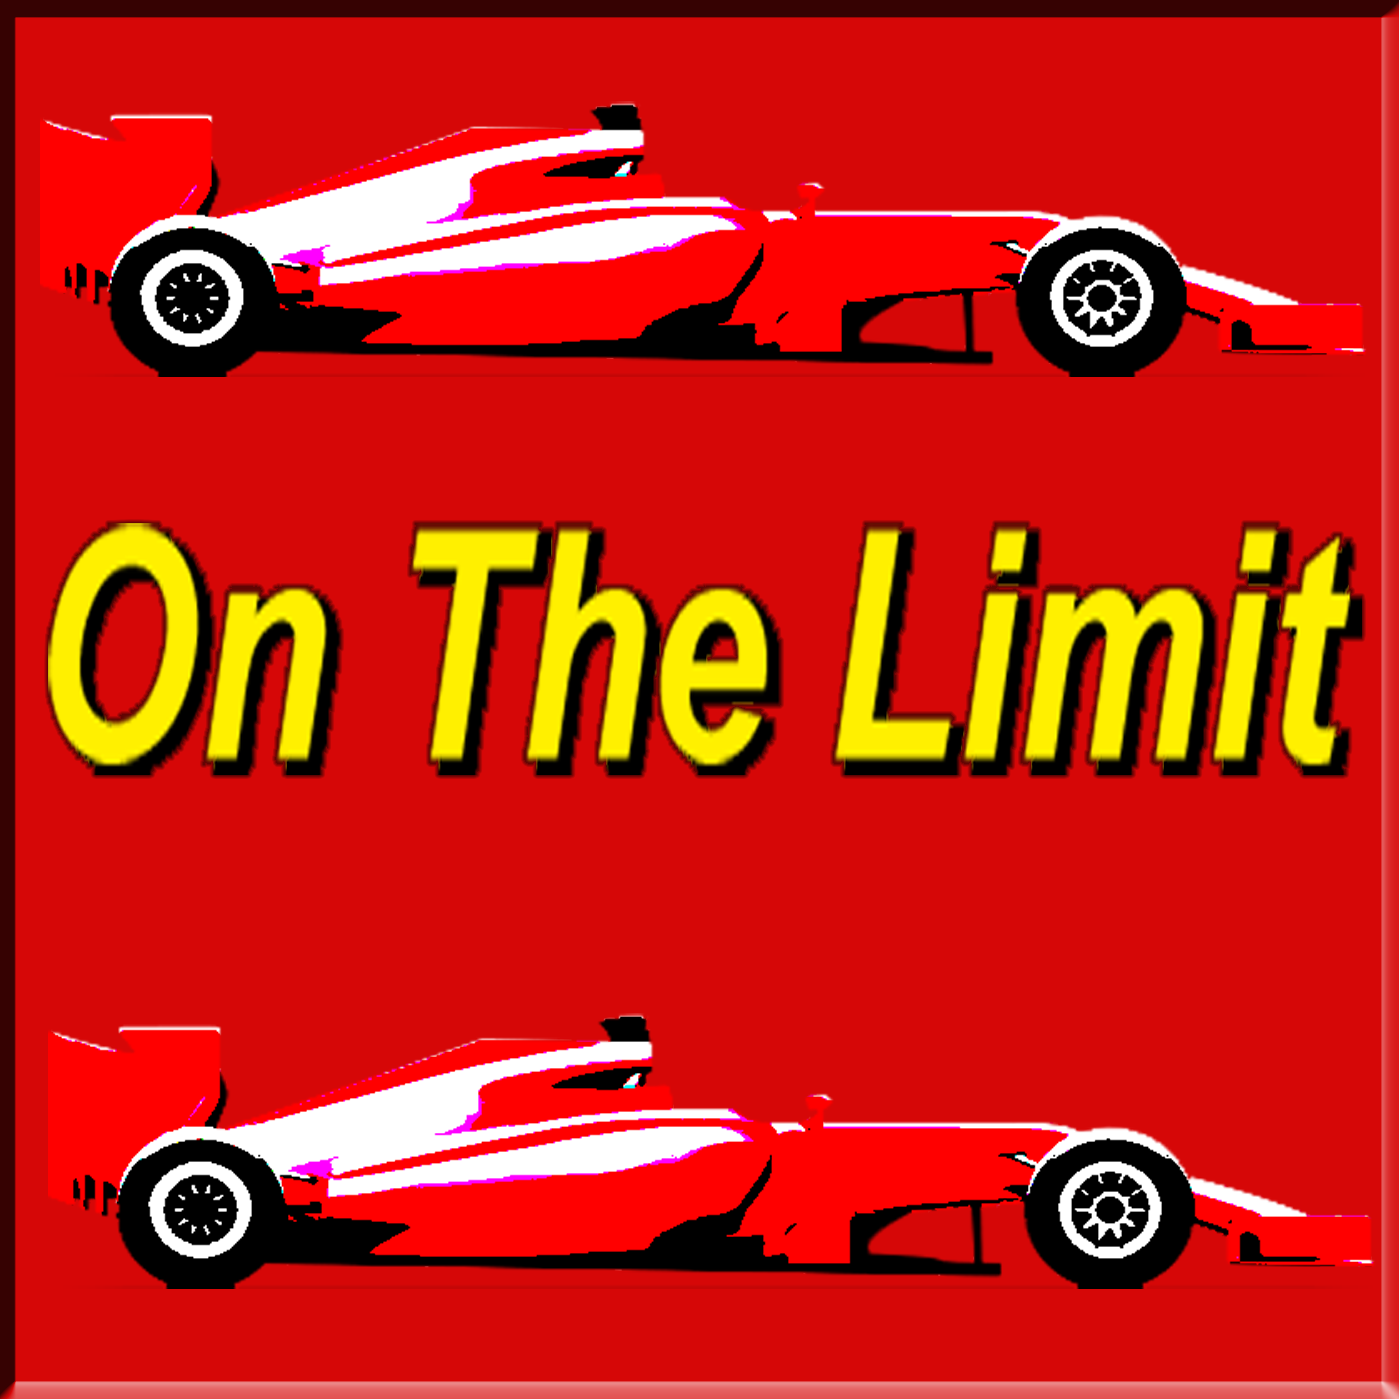 On The Limit